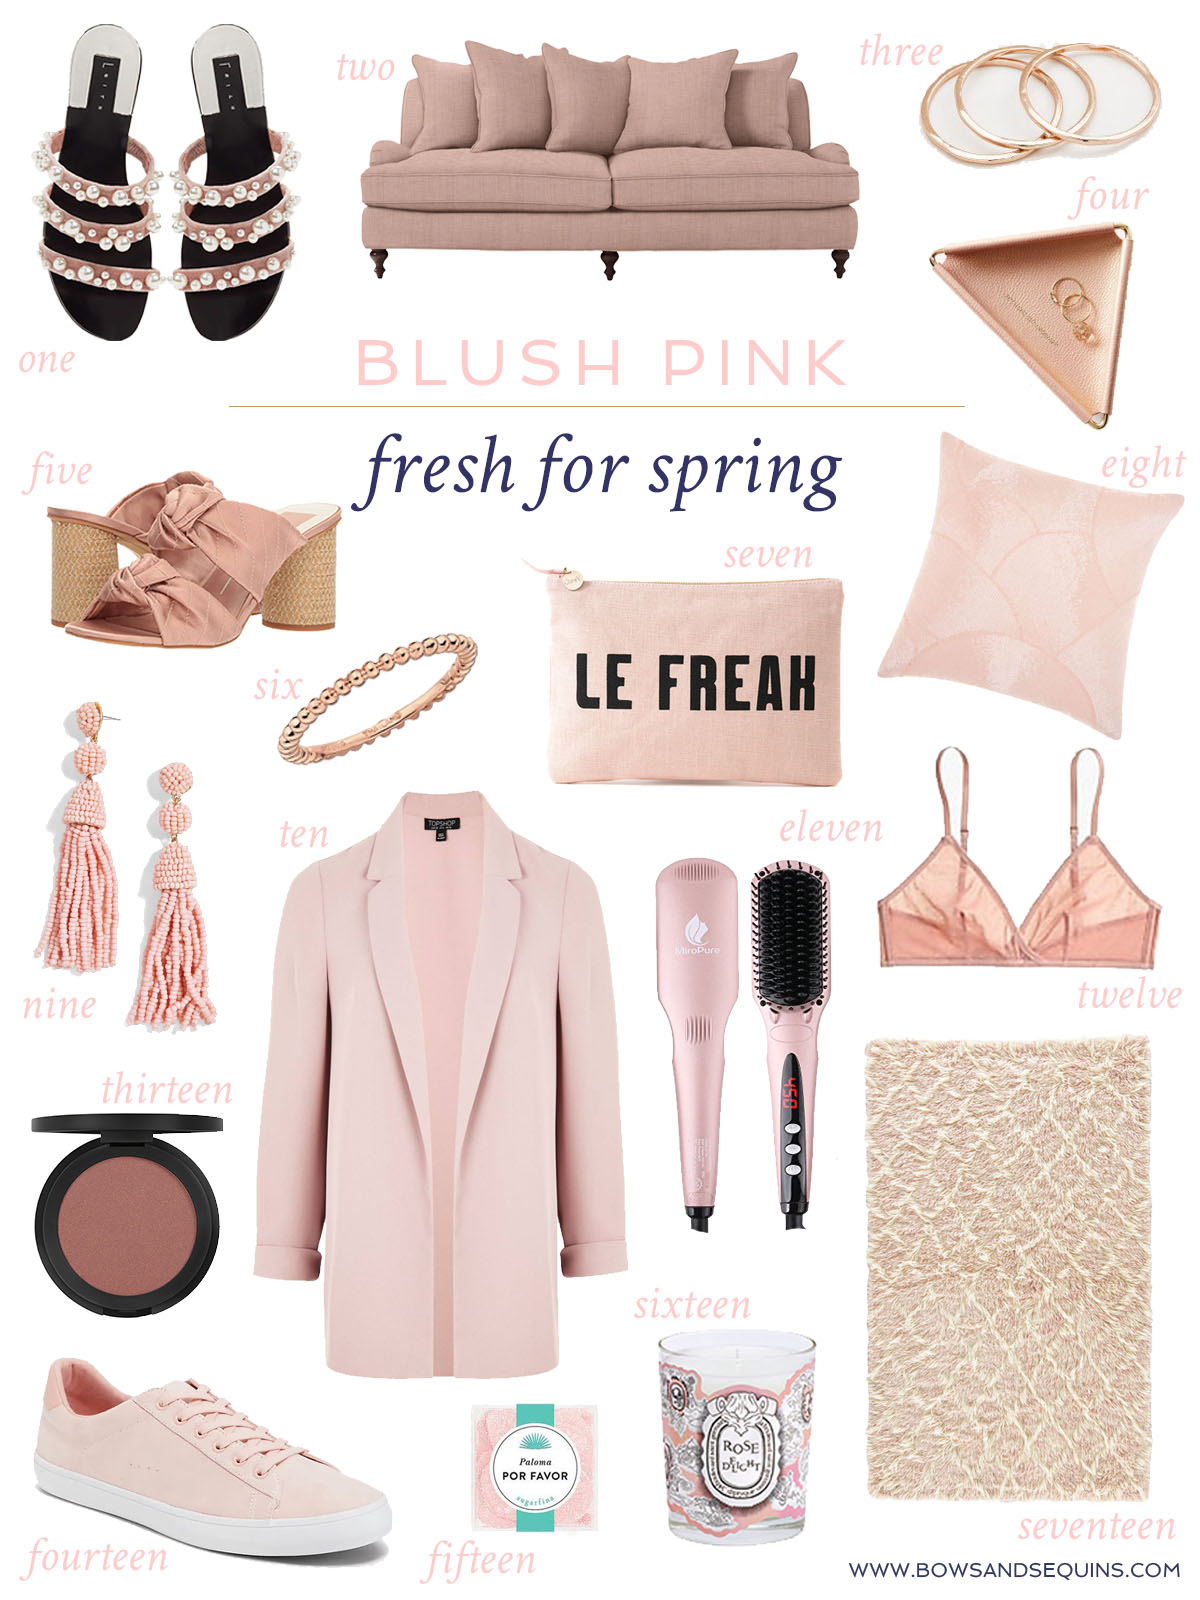 Jessica Sturdy shares her favorite blush pink shopping finds for spring fashion, beauty, and home decor.